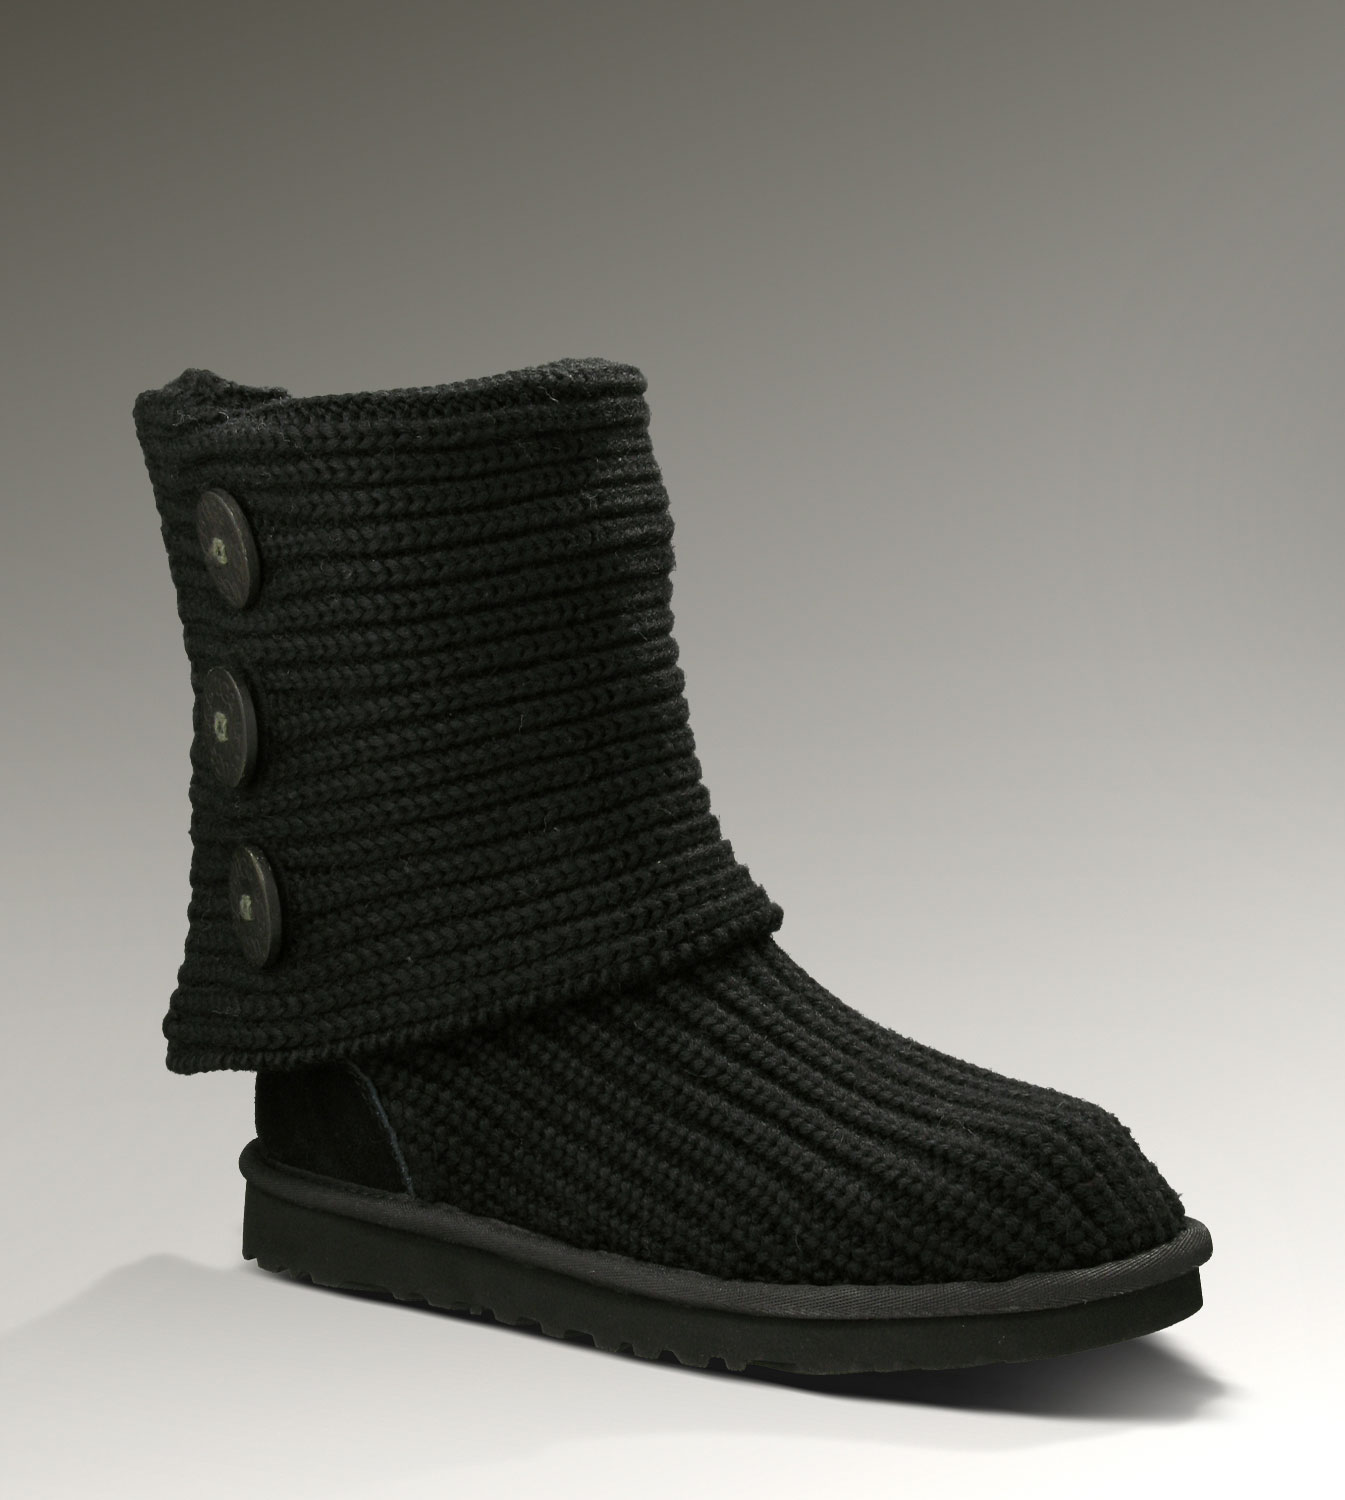 UGG Classic Cardy 5819 Black Boots